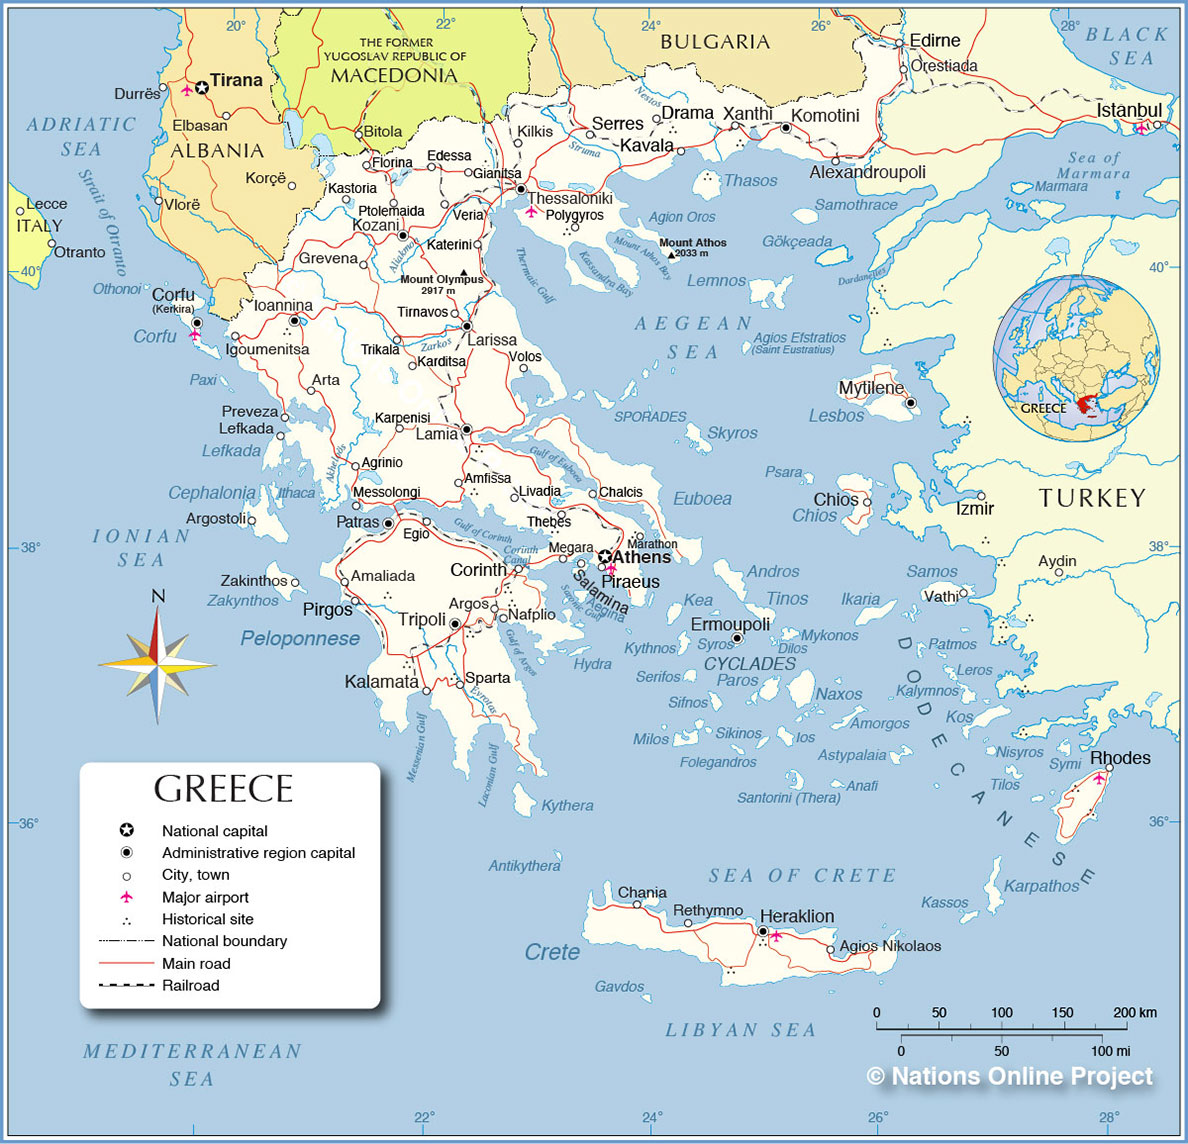 Greece Country Profile Destination Greece Nations Online Project